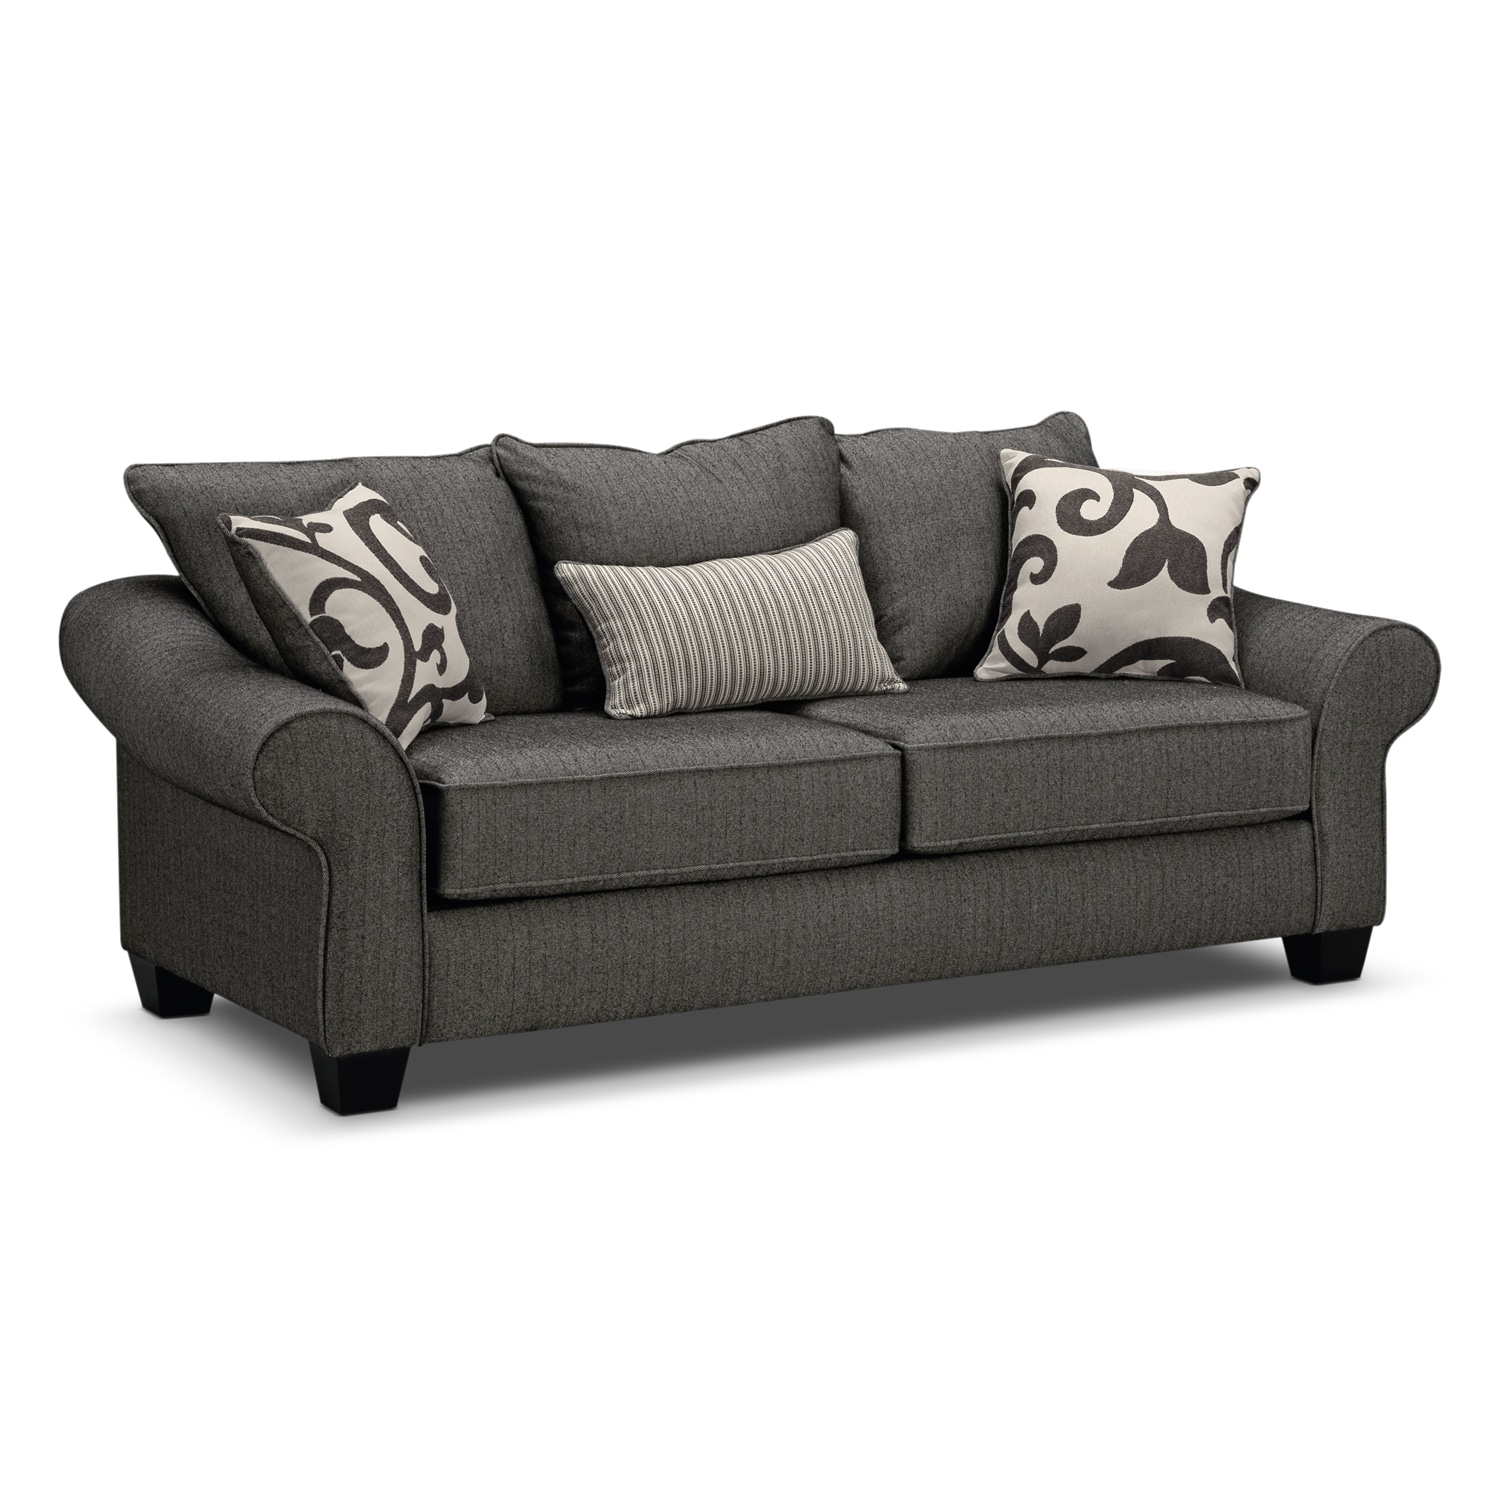 Colette Gray Sofa Value City Furniture